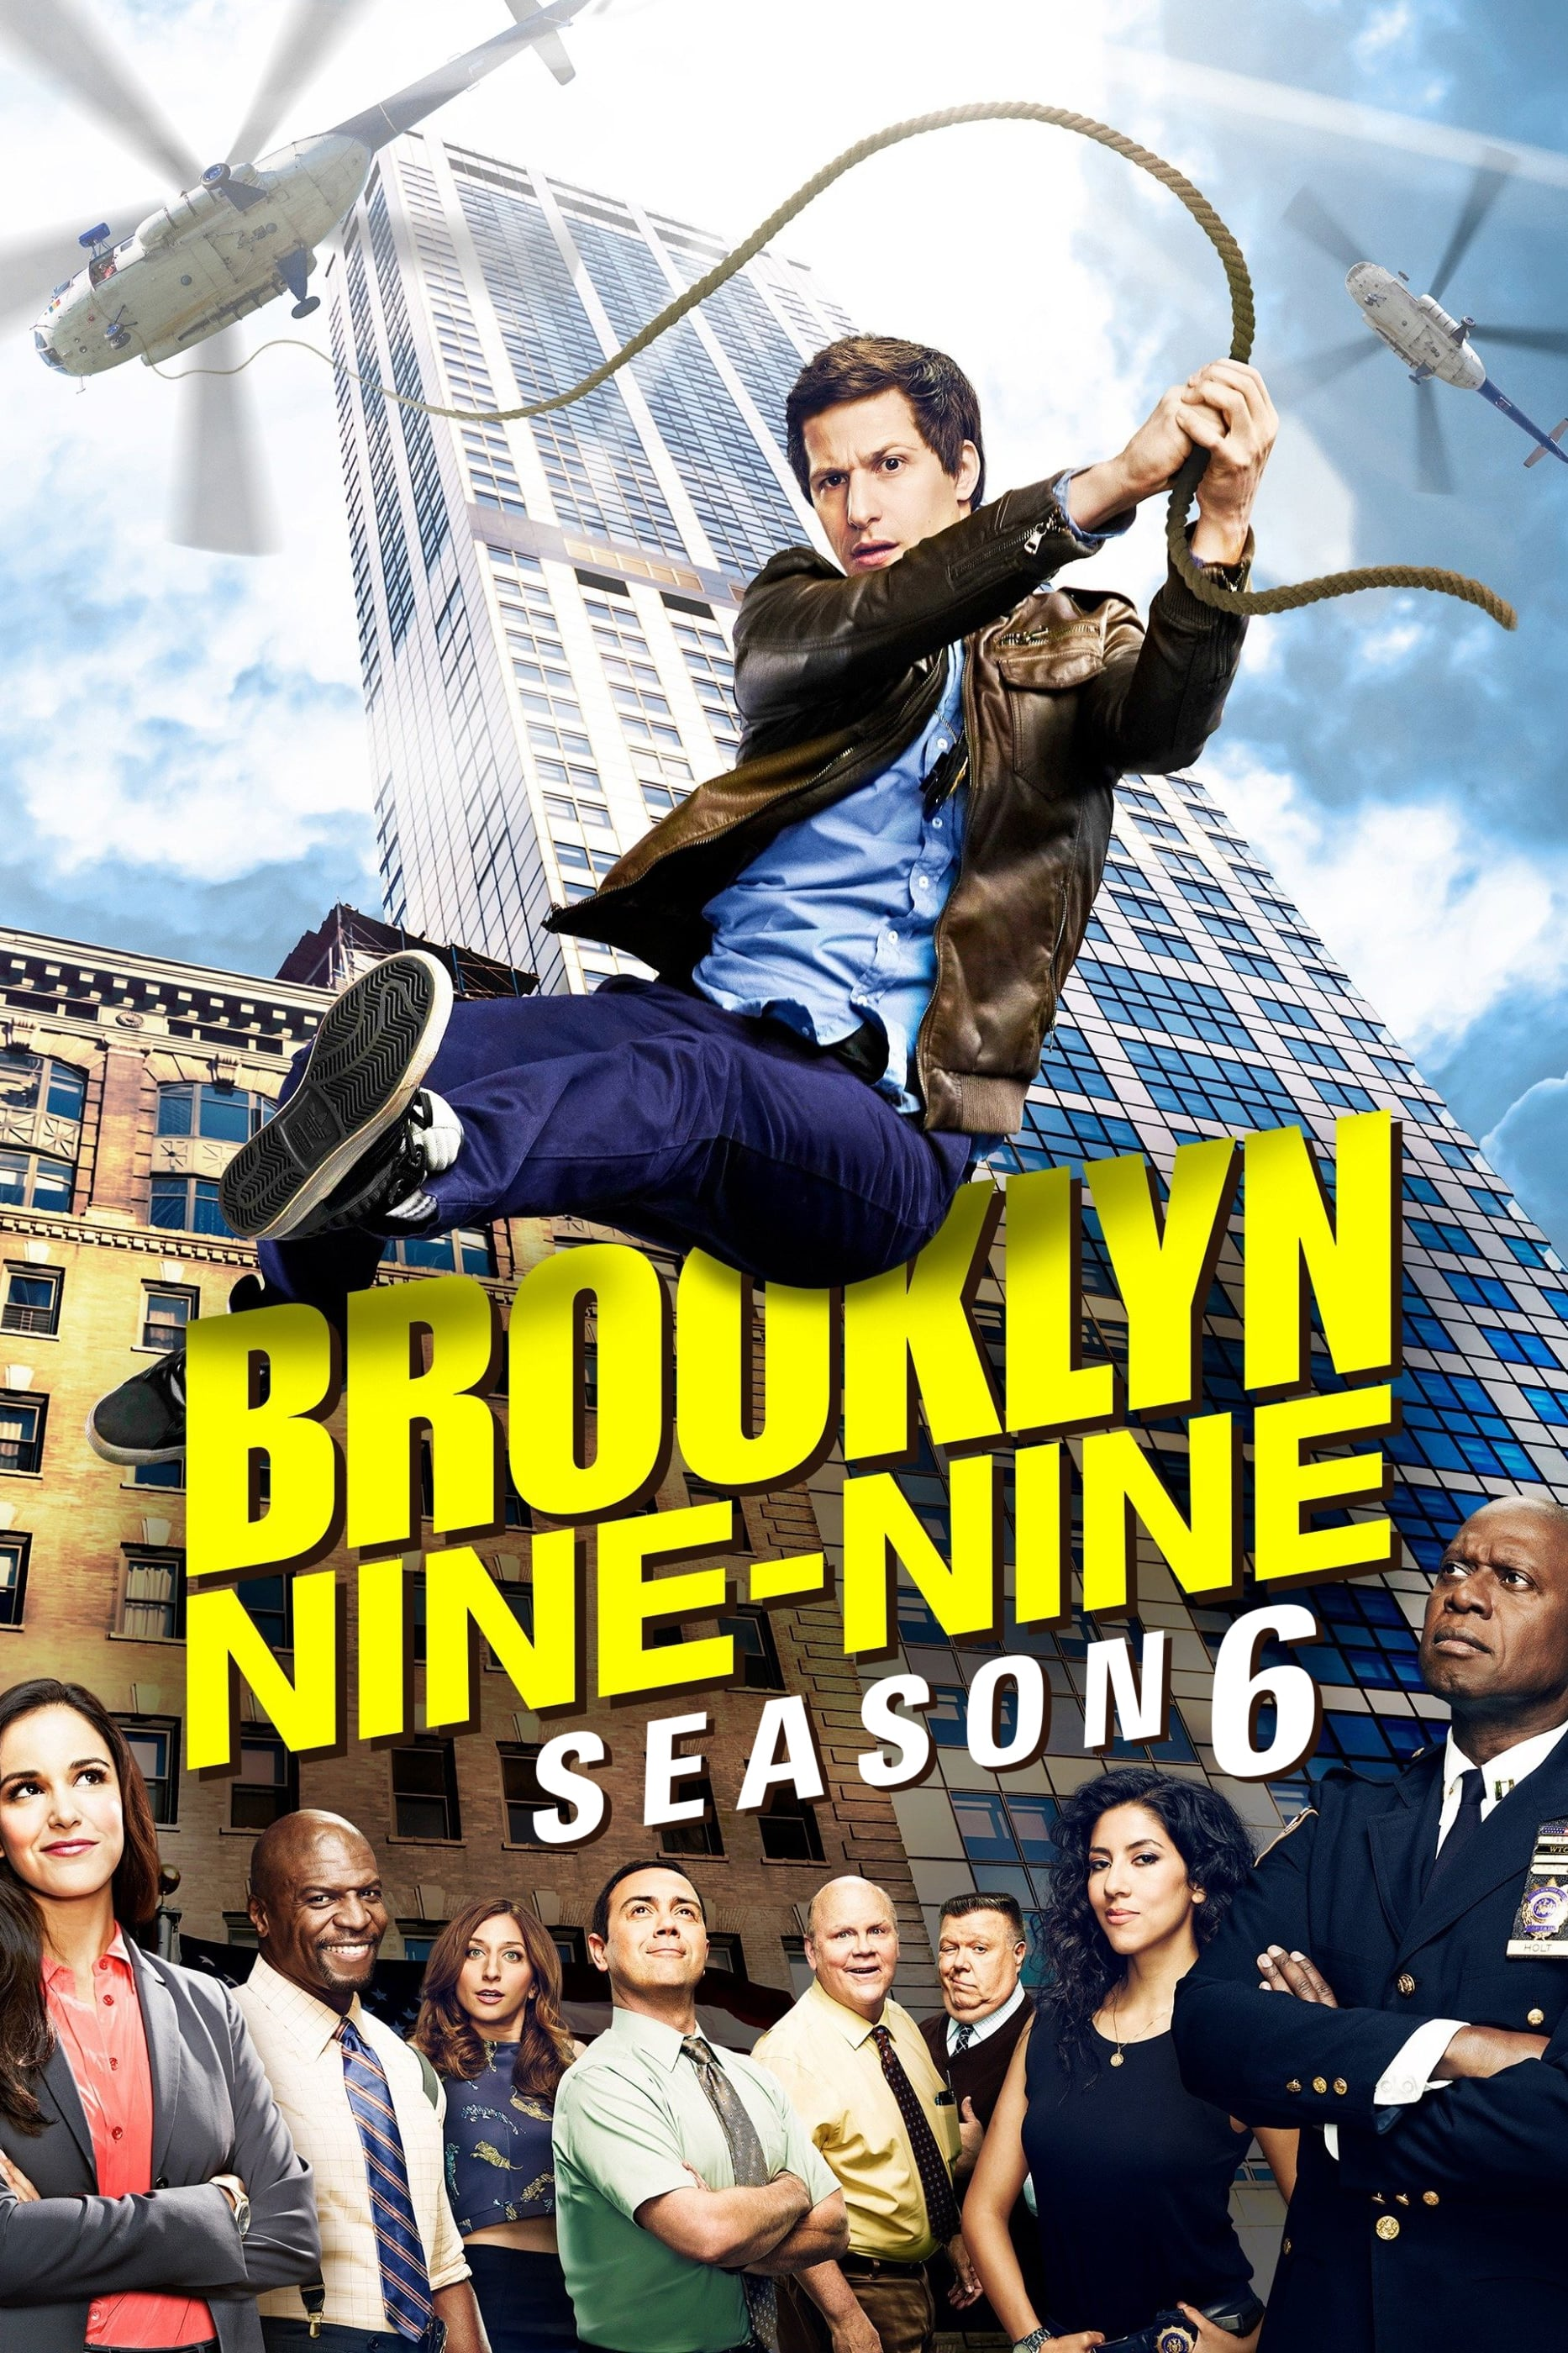 Brooklyn Nine-Nine Season 6